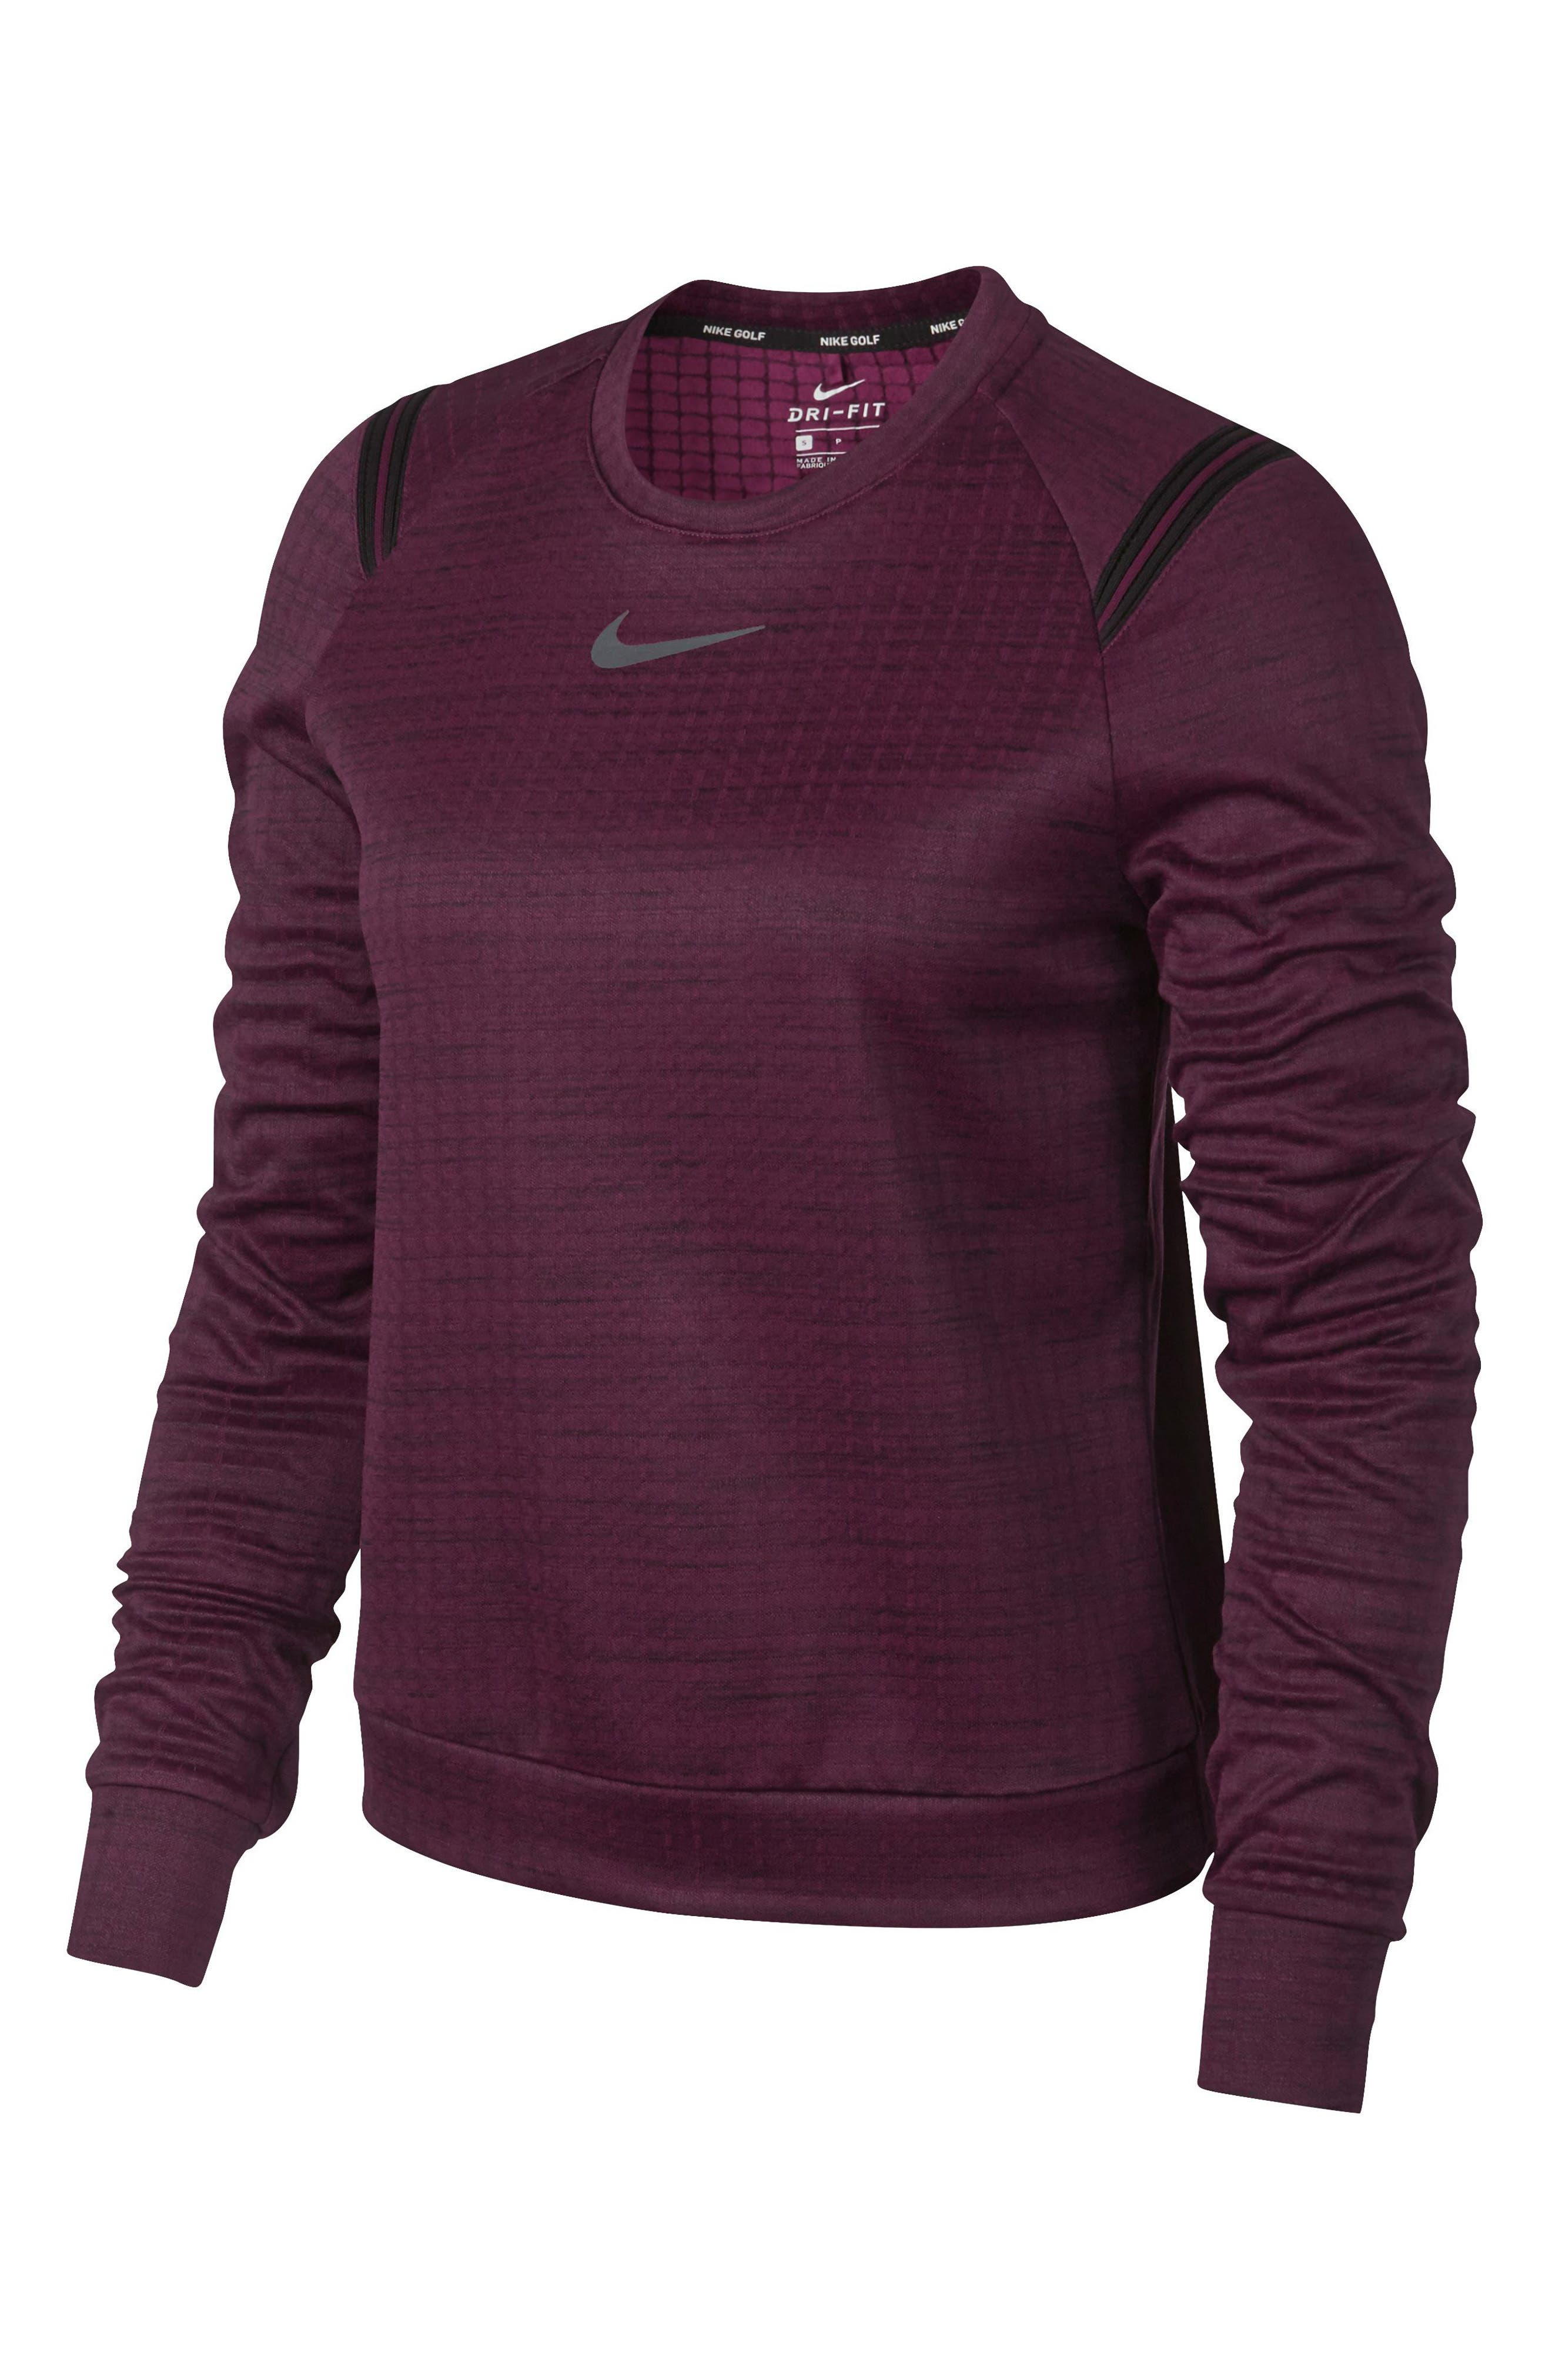 Therma Sphere Long Sleeve Top,                             Alternate thumbnail 4, color,                             Burgundy